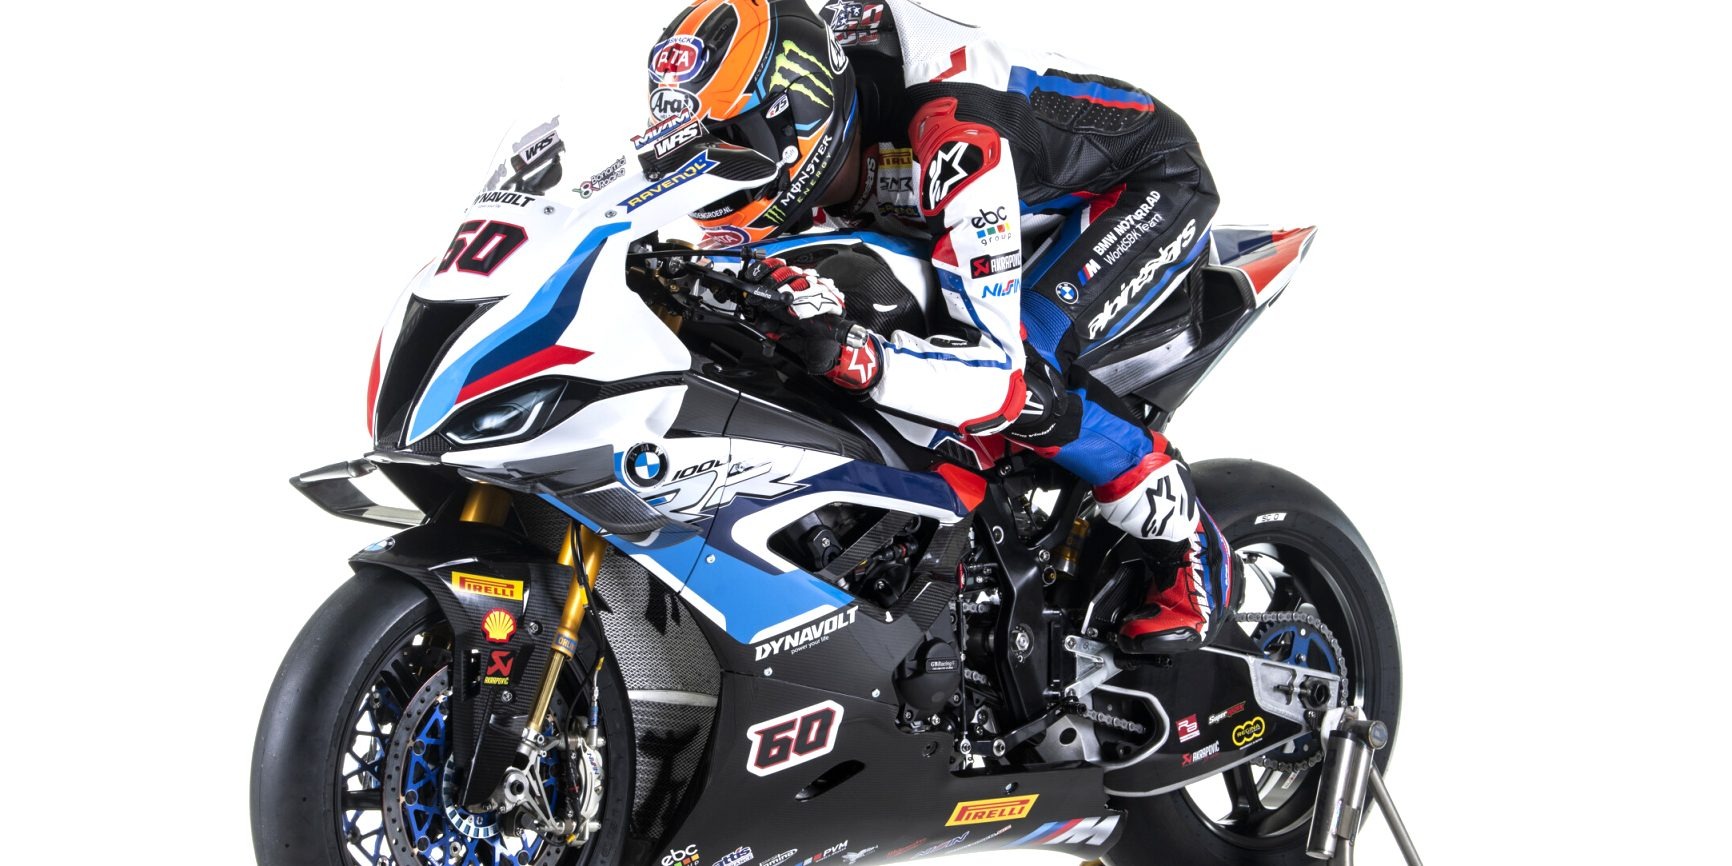 BMW wsbk 2021 Concept and Review